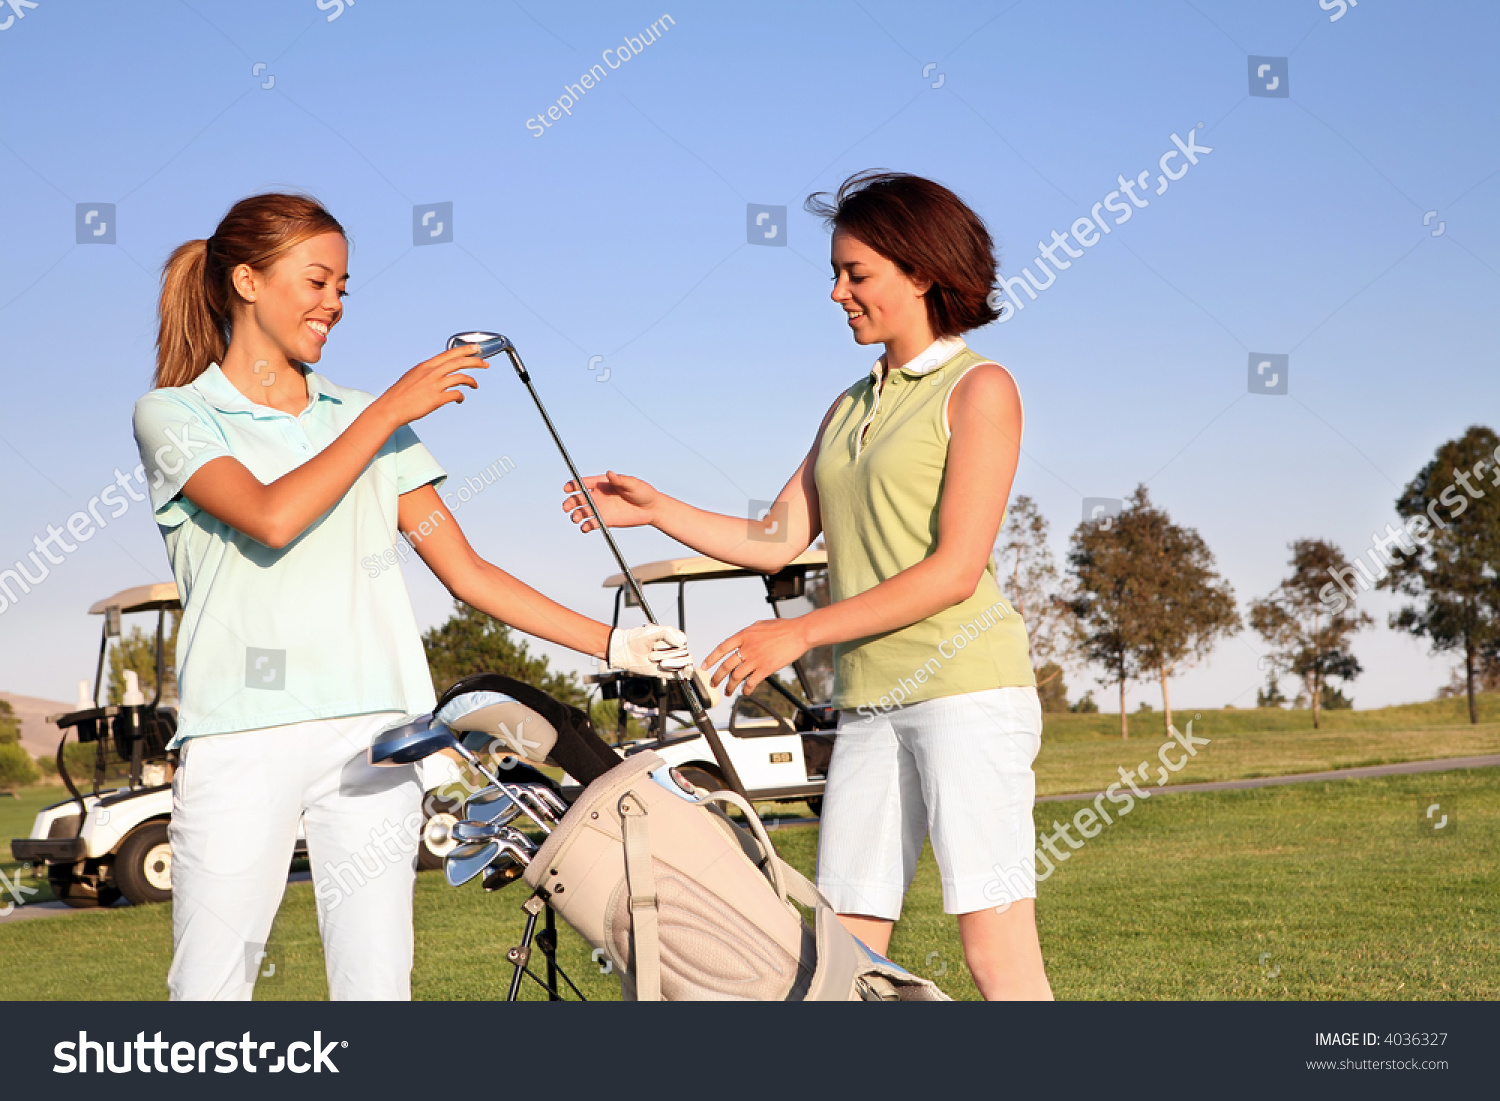 Women playing golf on course - Stock Image - F007/0856